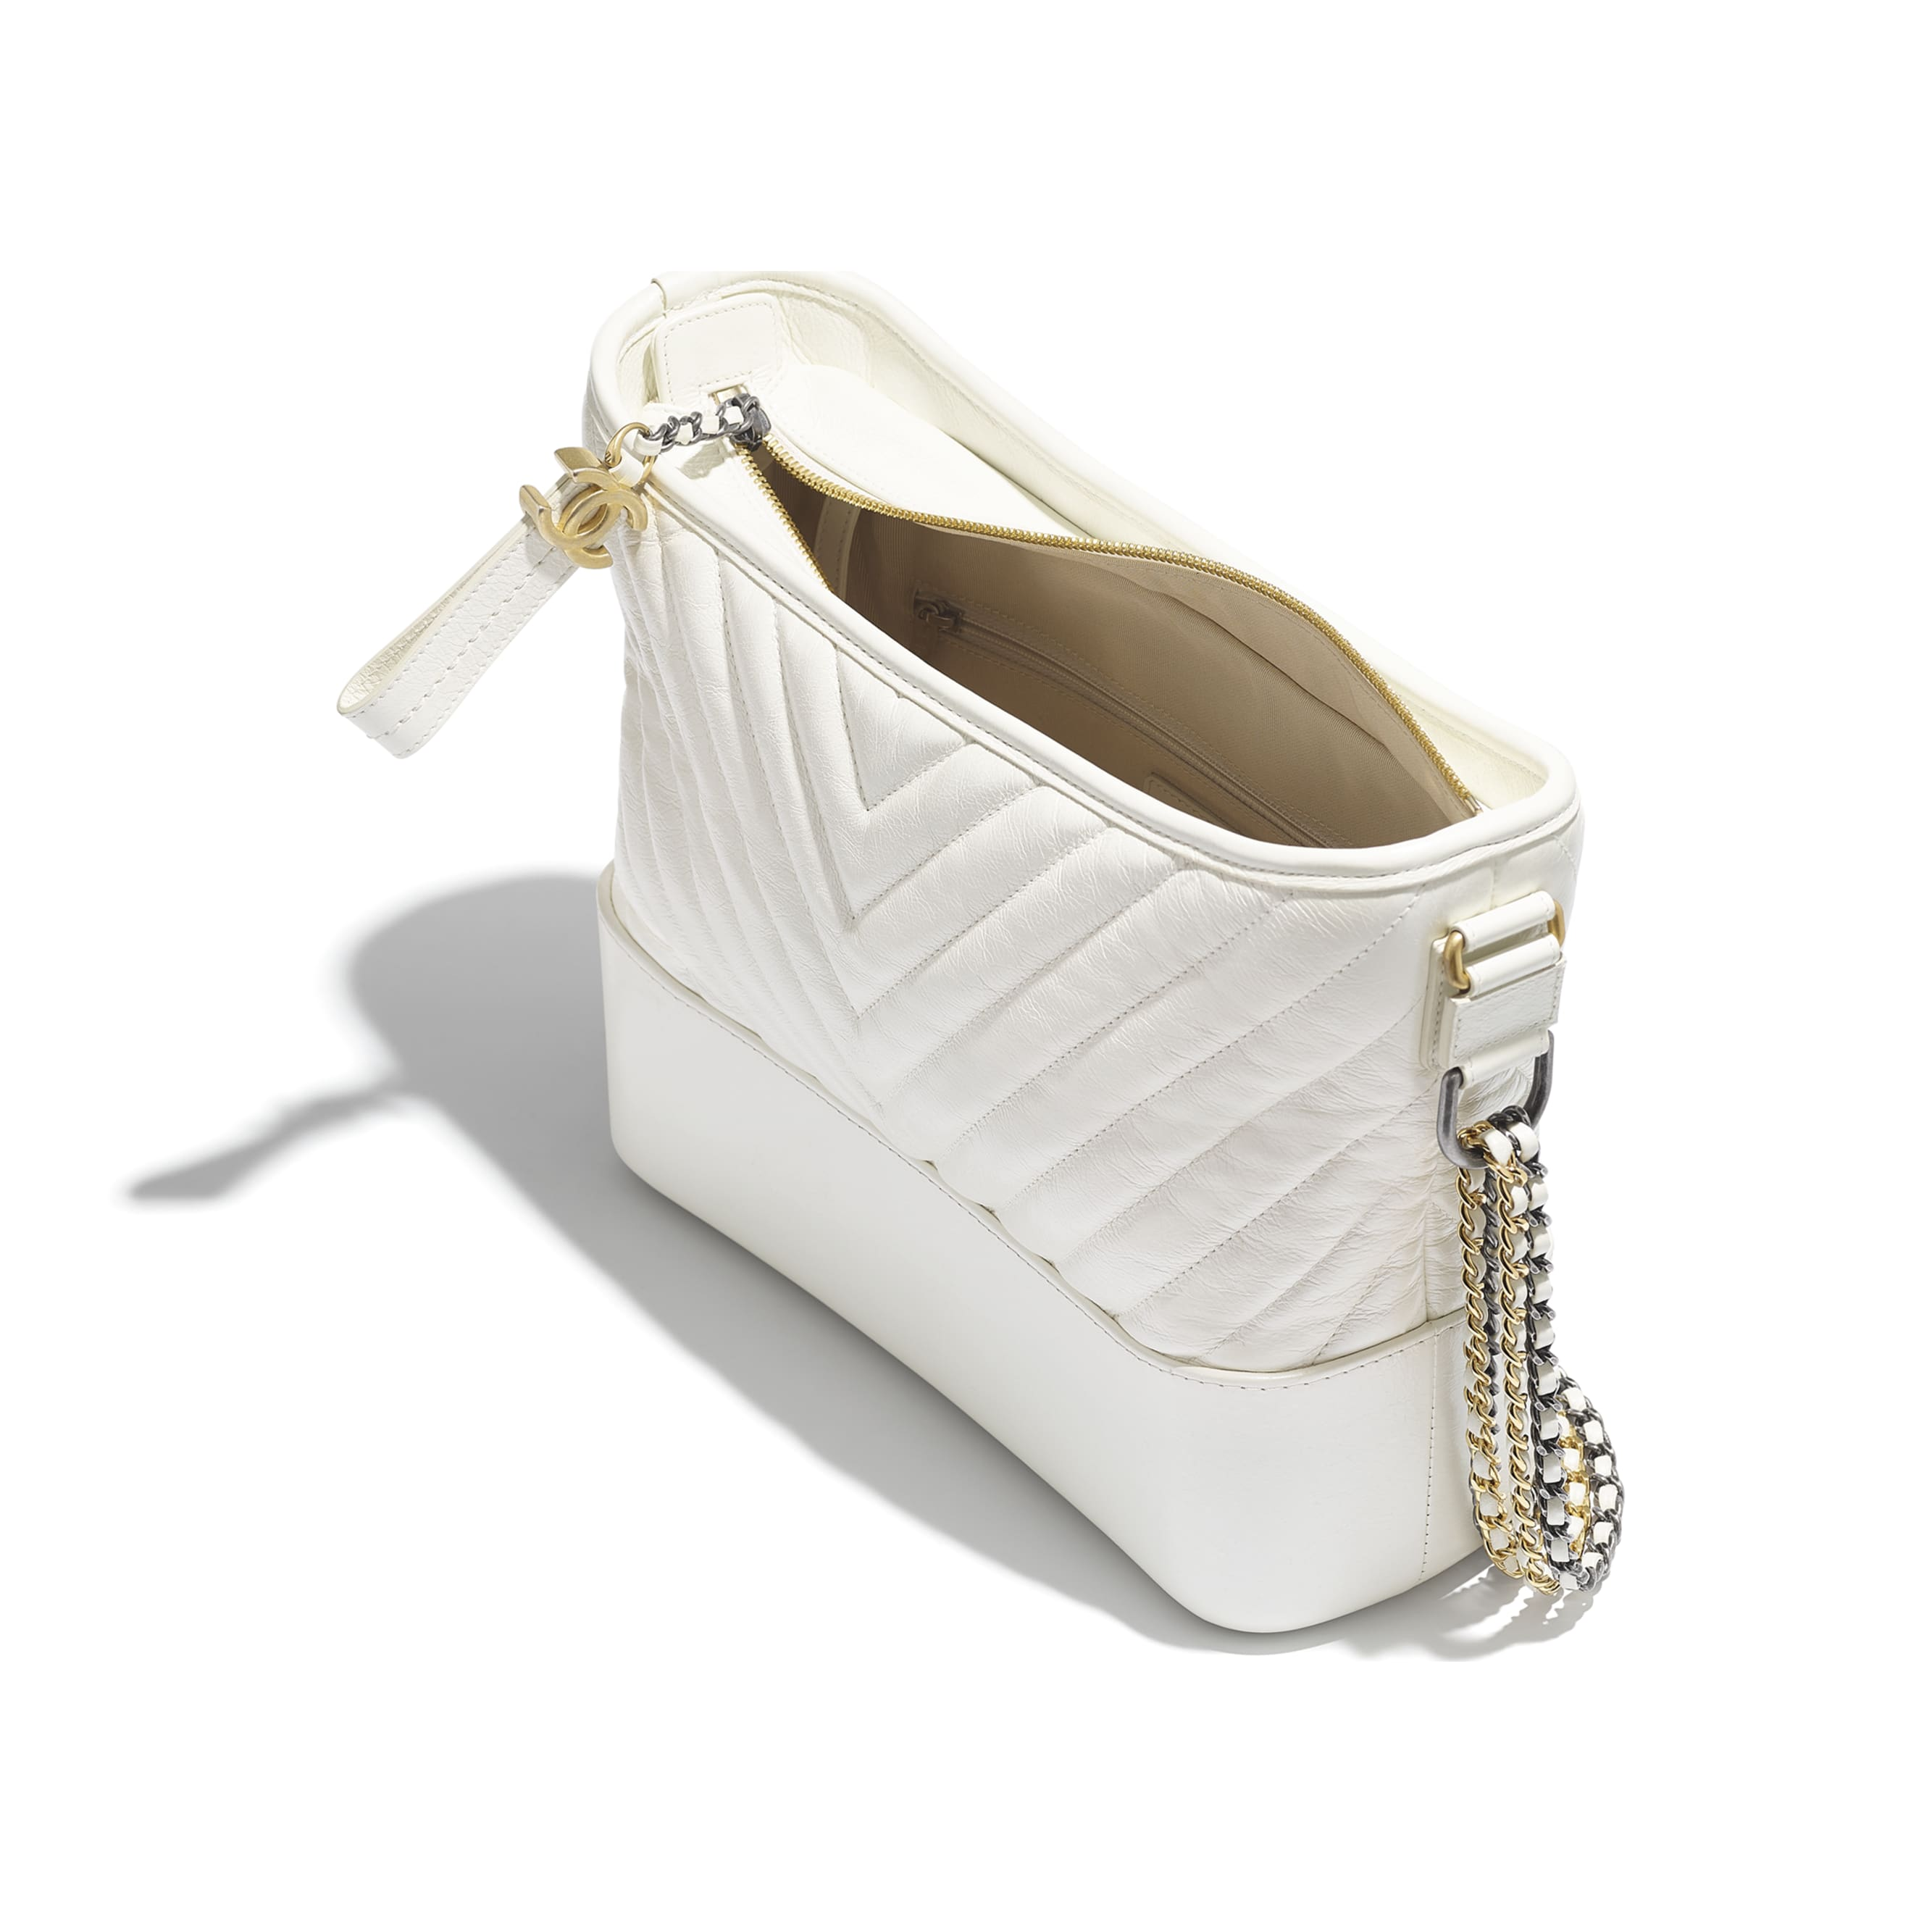 CHANEL'S GABRIELLE Large Hobo Bag - White - Metallic Crumpled Calfskin, Gold-Tone & Silver-Tone Metal - Other view - see standard sized version